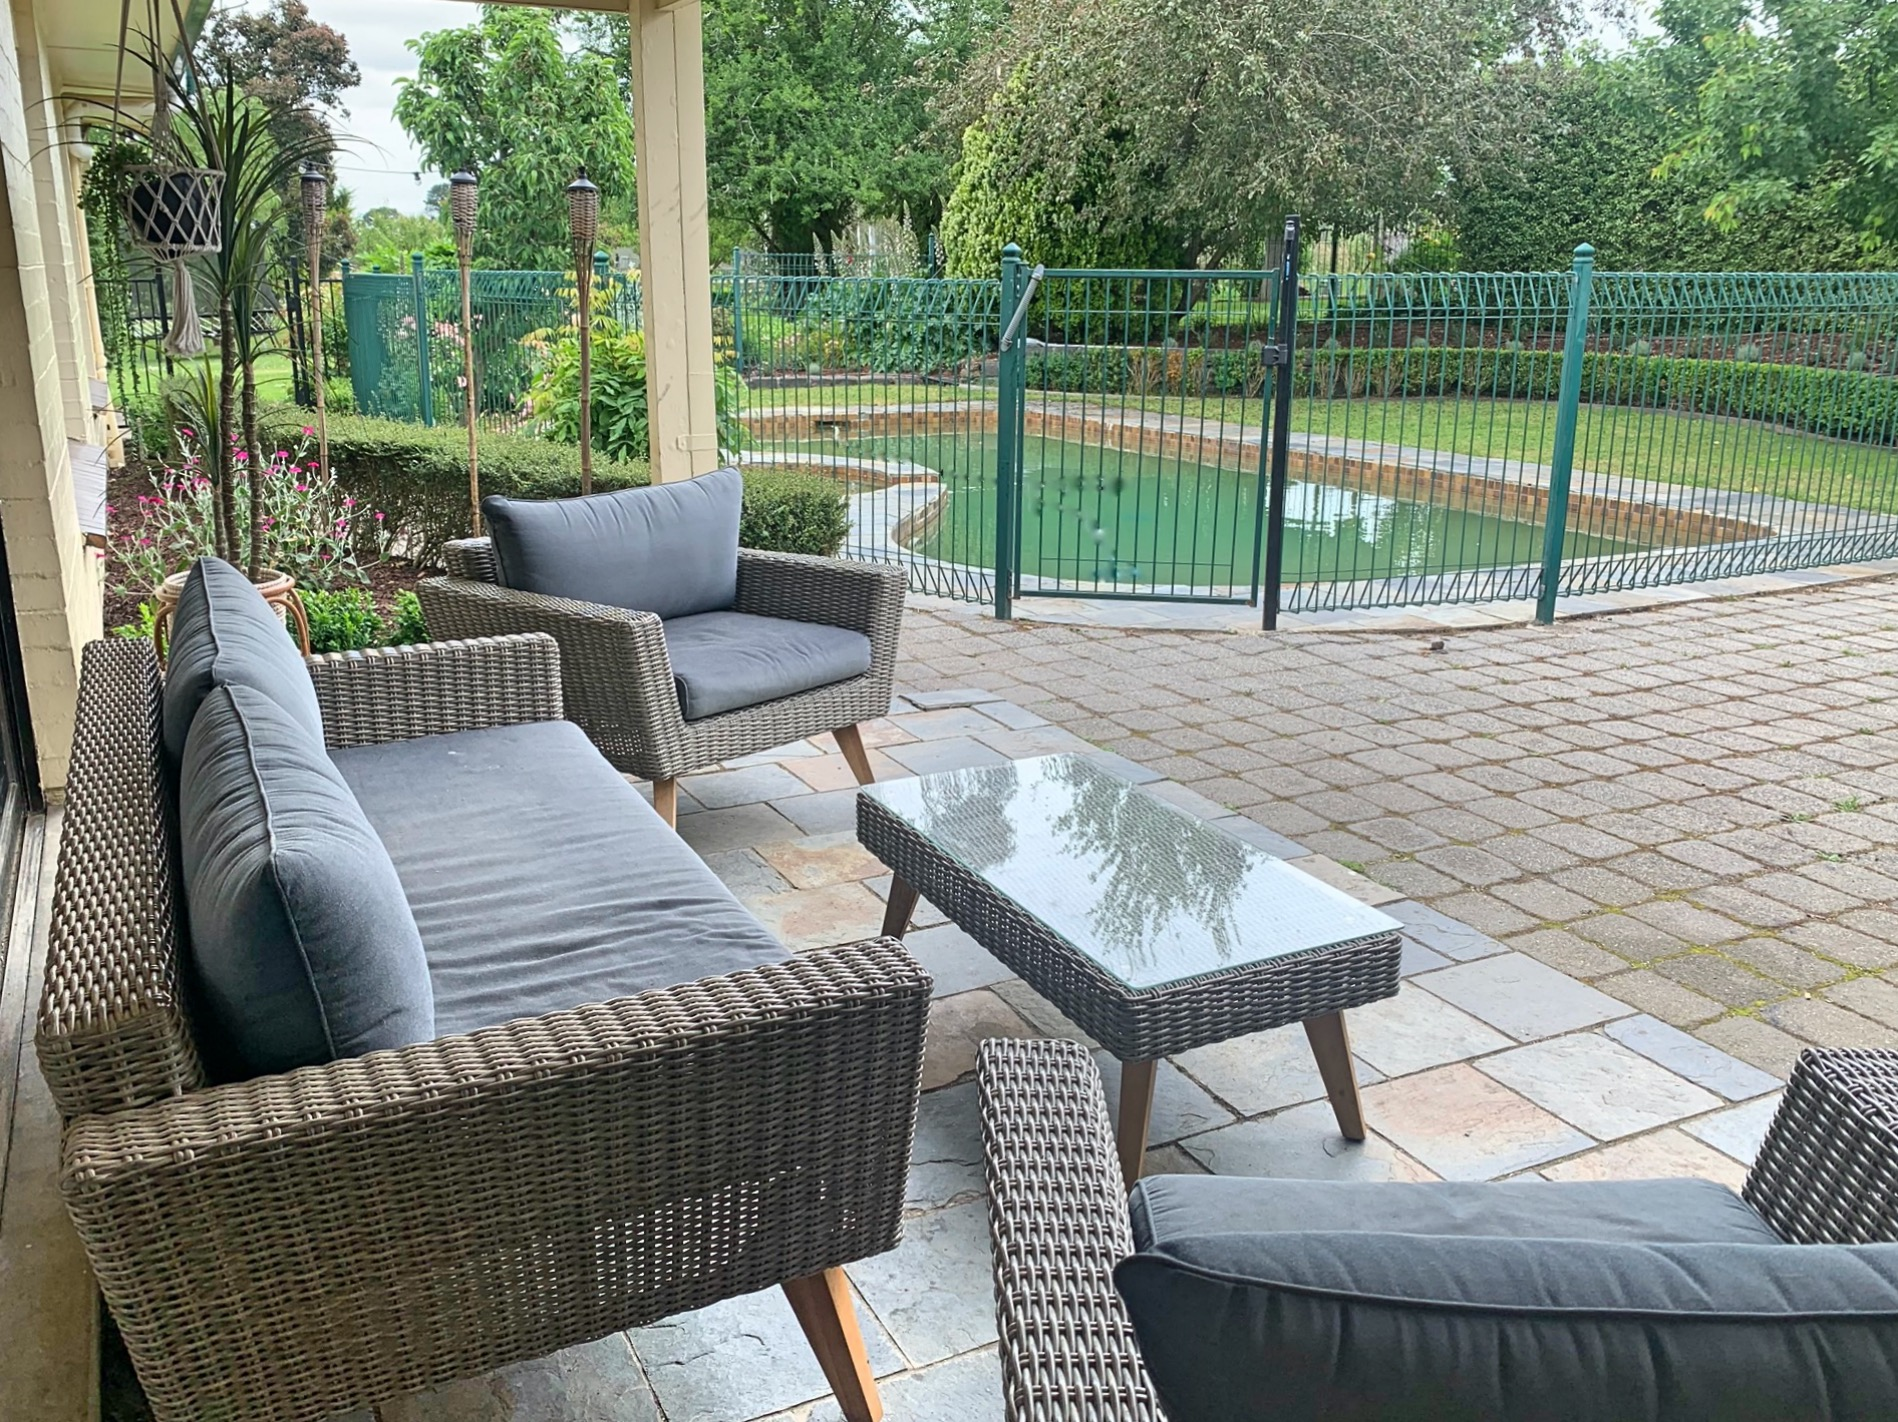 Outdoor undercover seating area. holiday rental Moorooduc